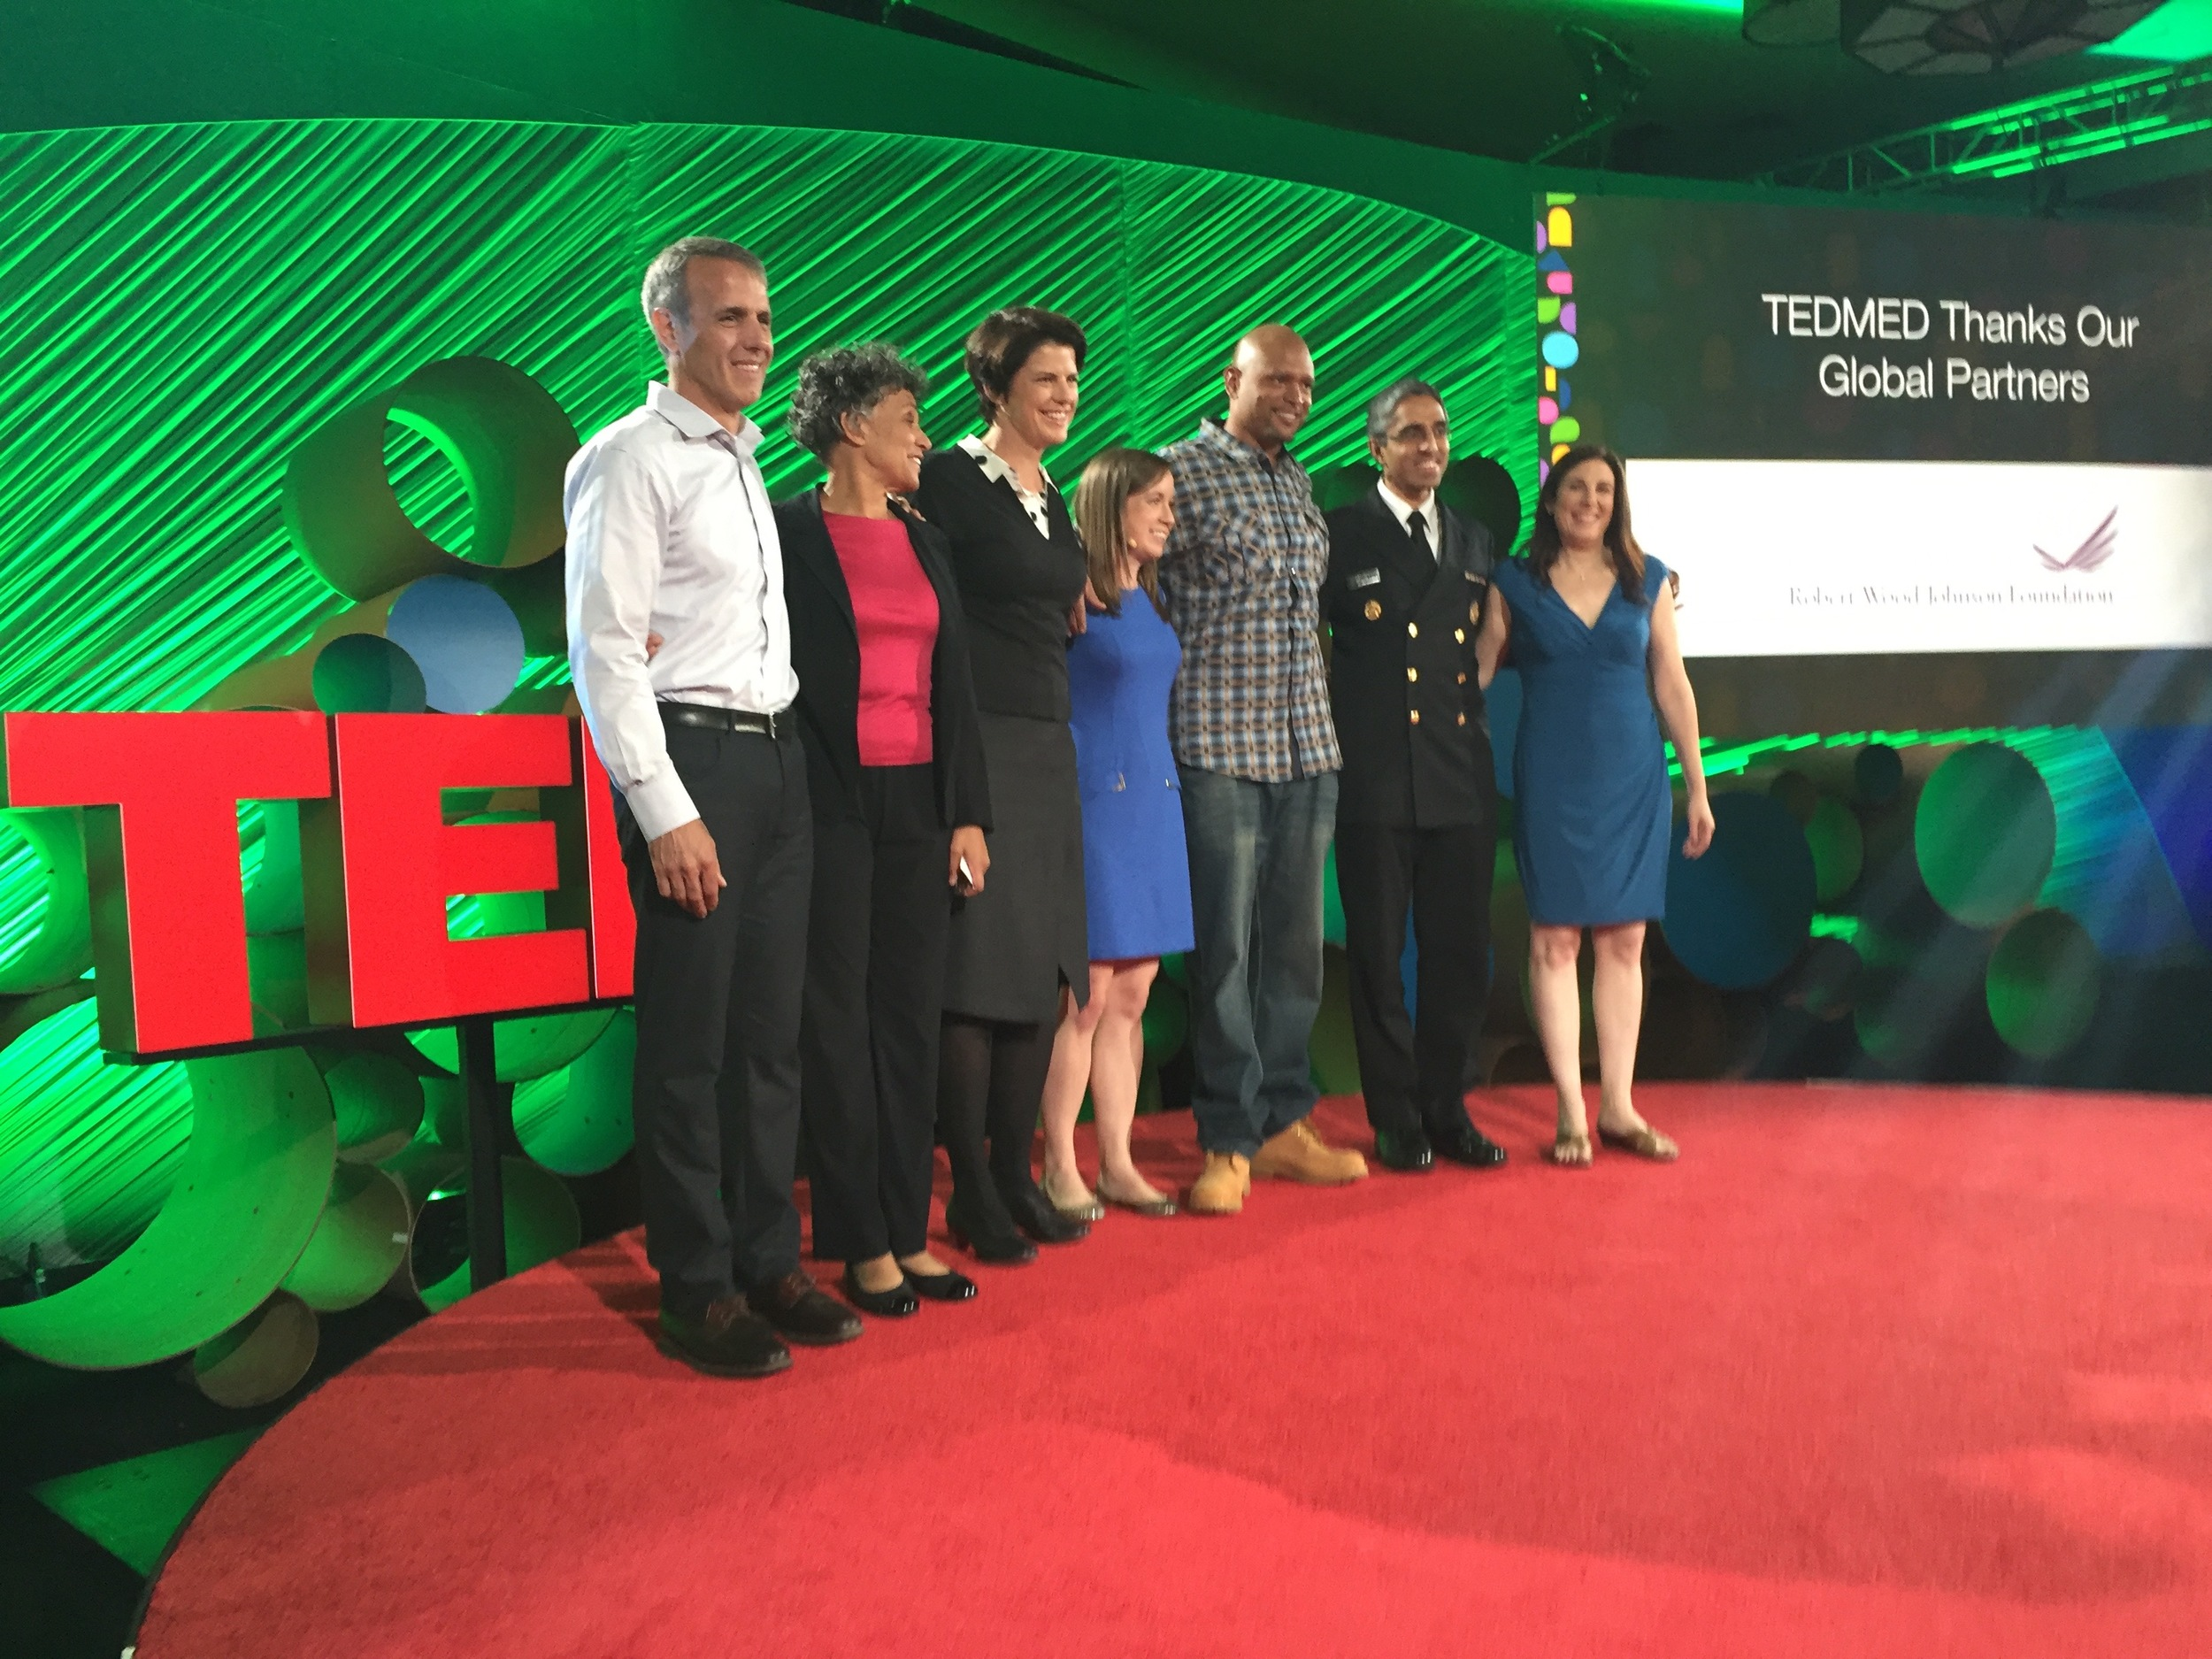 """All of us in the """"Back to Basics"""" session, at TEDMED 2015 in Palm Springs, from November 18-20 this year."""